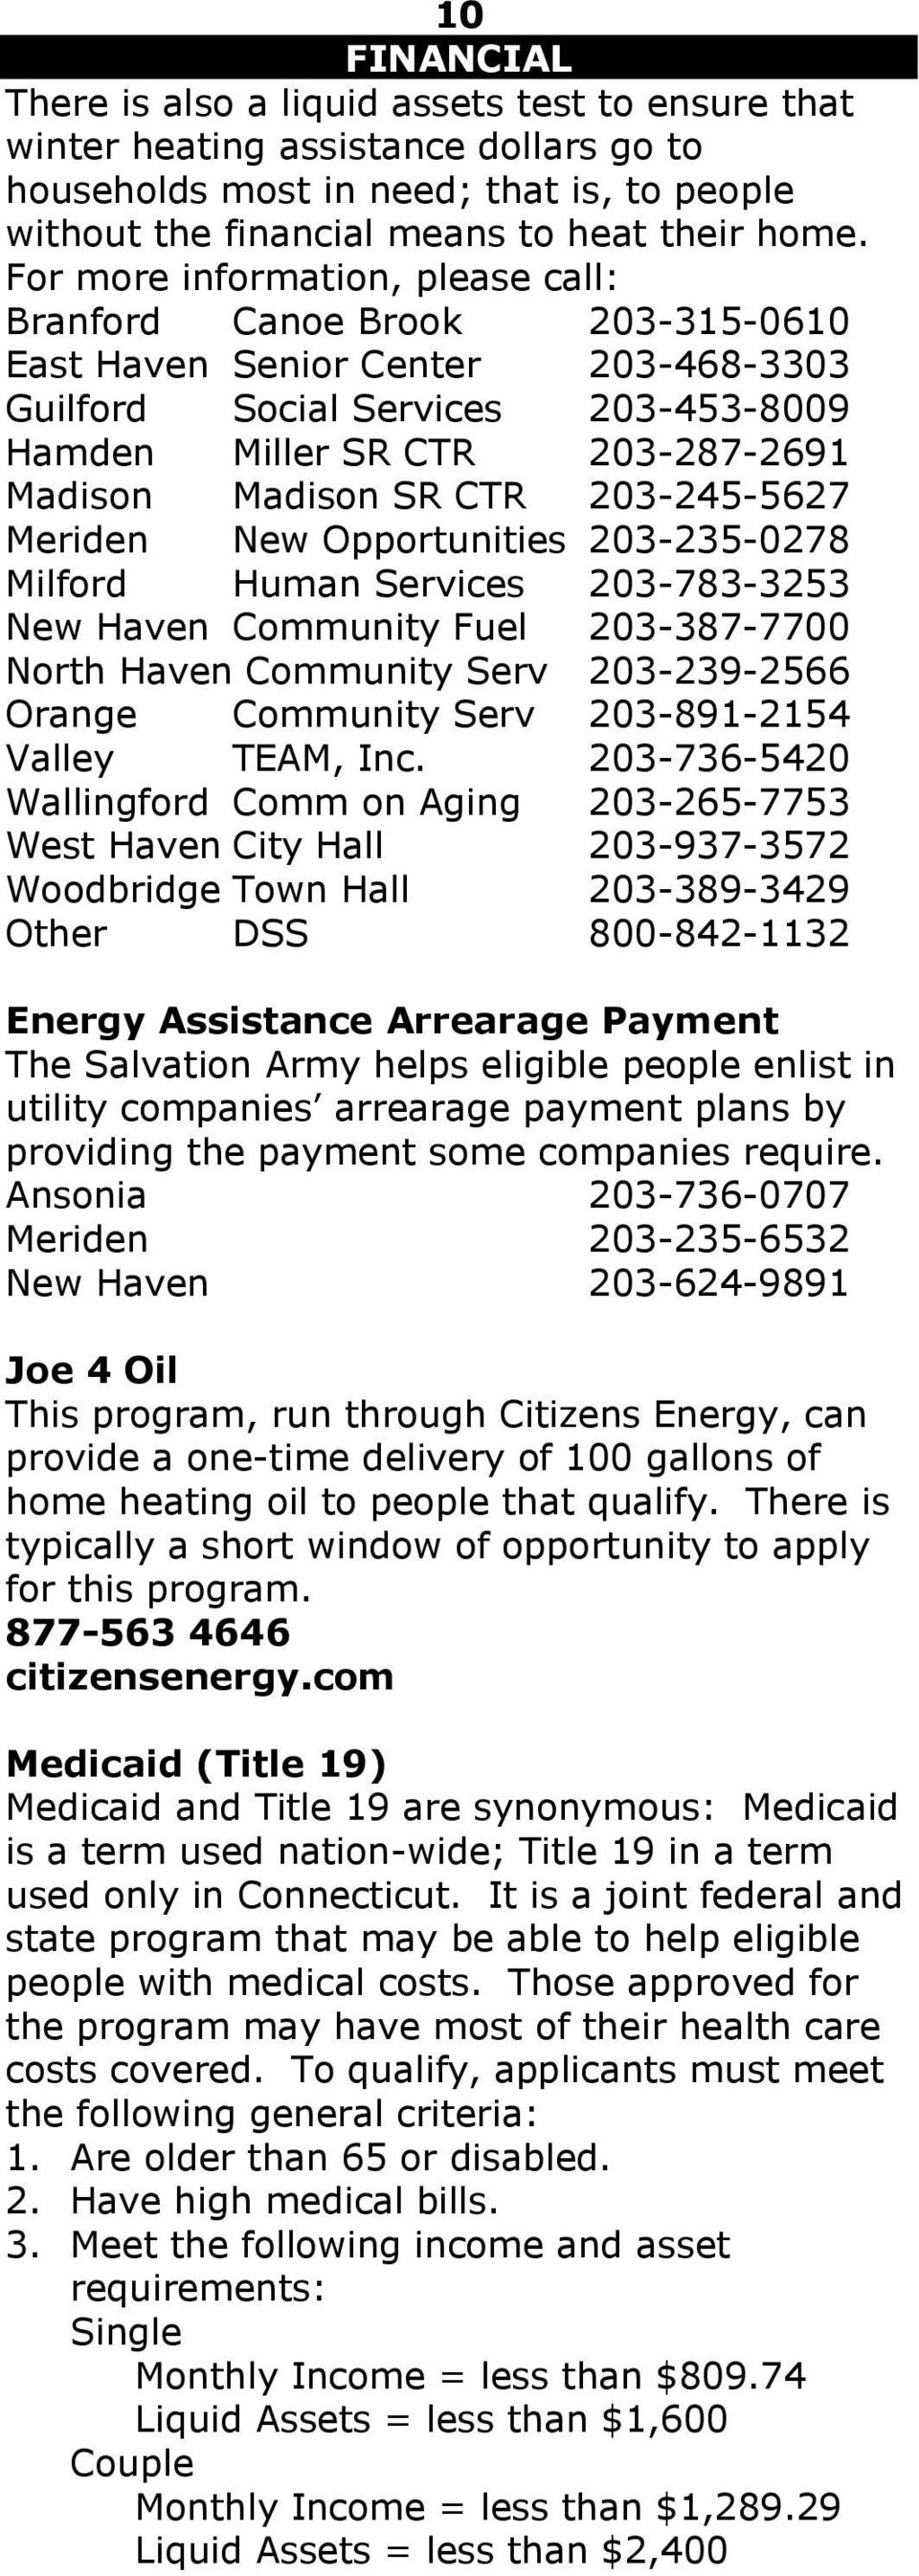 CTR 203-245-5627 Meriden New Opportunities 203-235-0278 Milford Human Services 203-783-3253 New Haven Community Fuel 203-387-7700 North Haven Community Serv 203-239-2566 Orange Community Serv